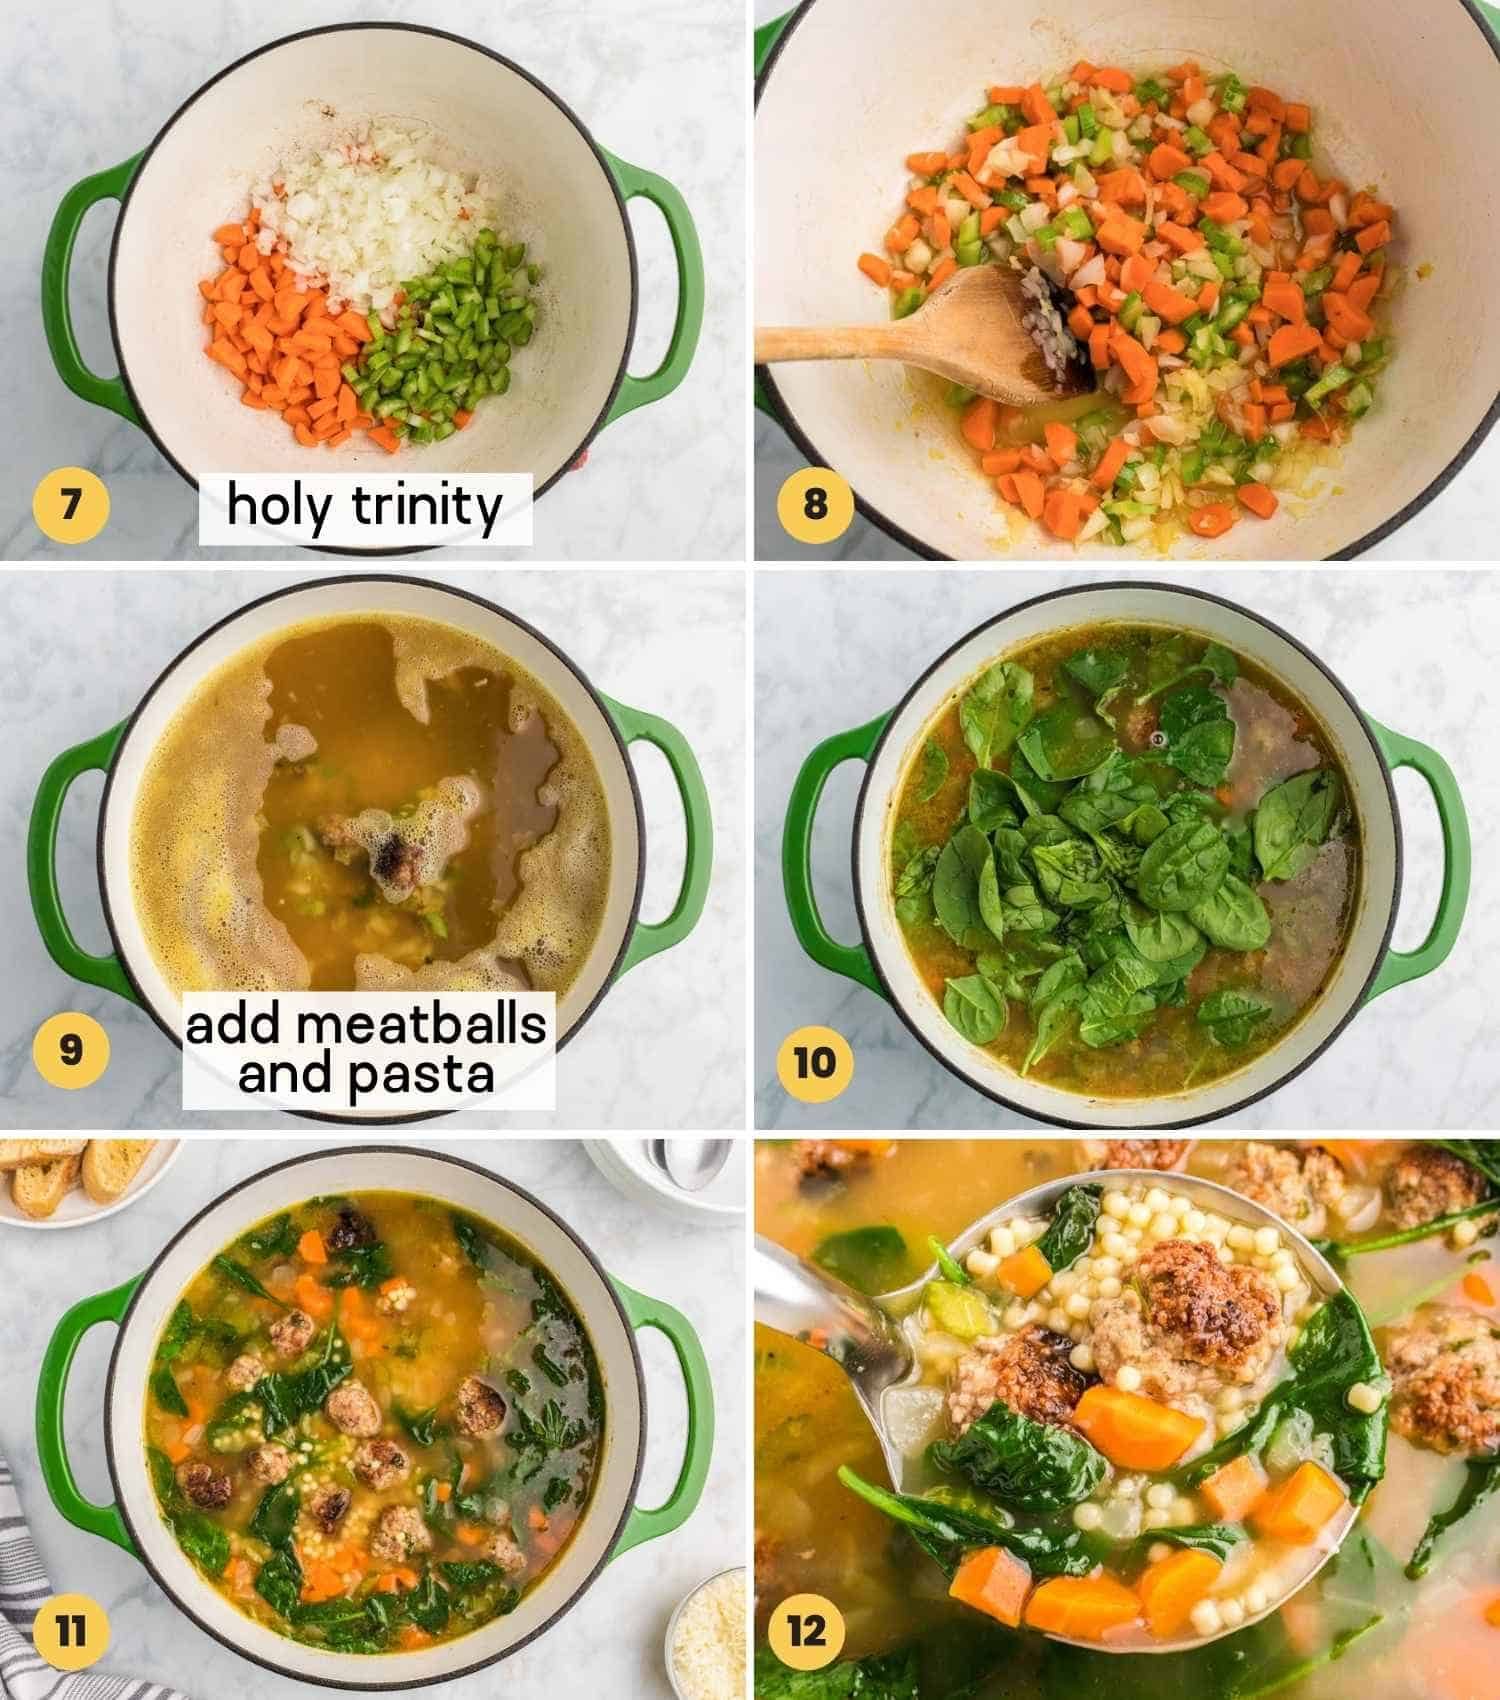 A collage with 6 images showing how to make italian wedding soup with meatballs